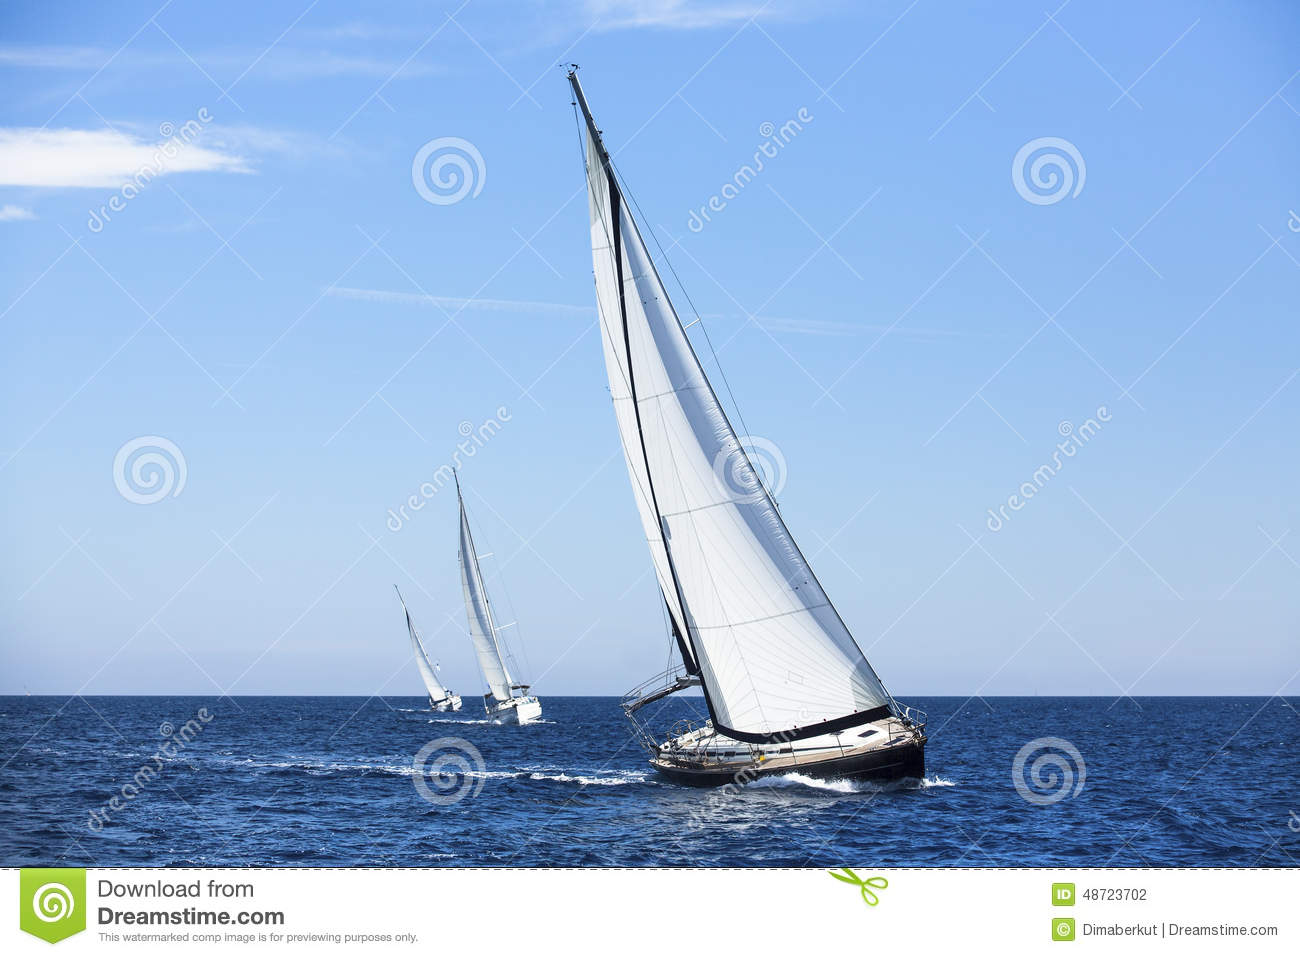 Sailing Ship Yachts With White Sails  Stock Photo - Image of